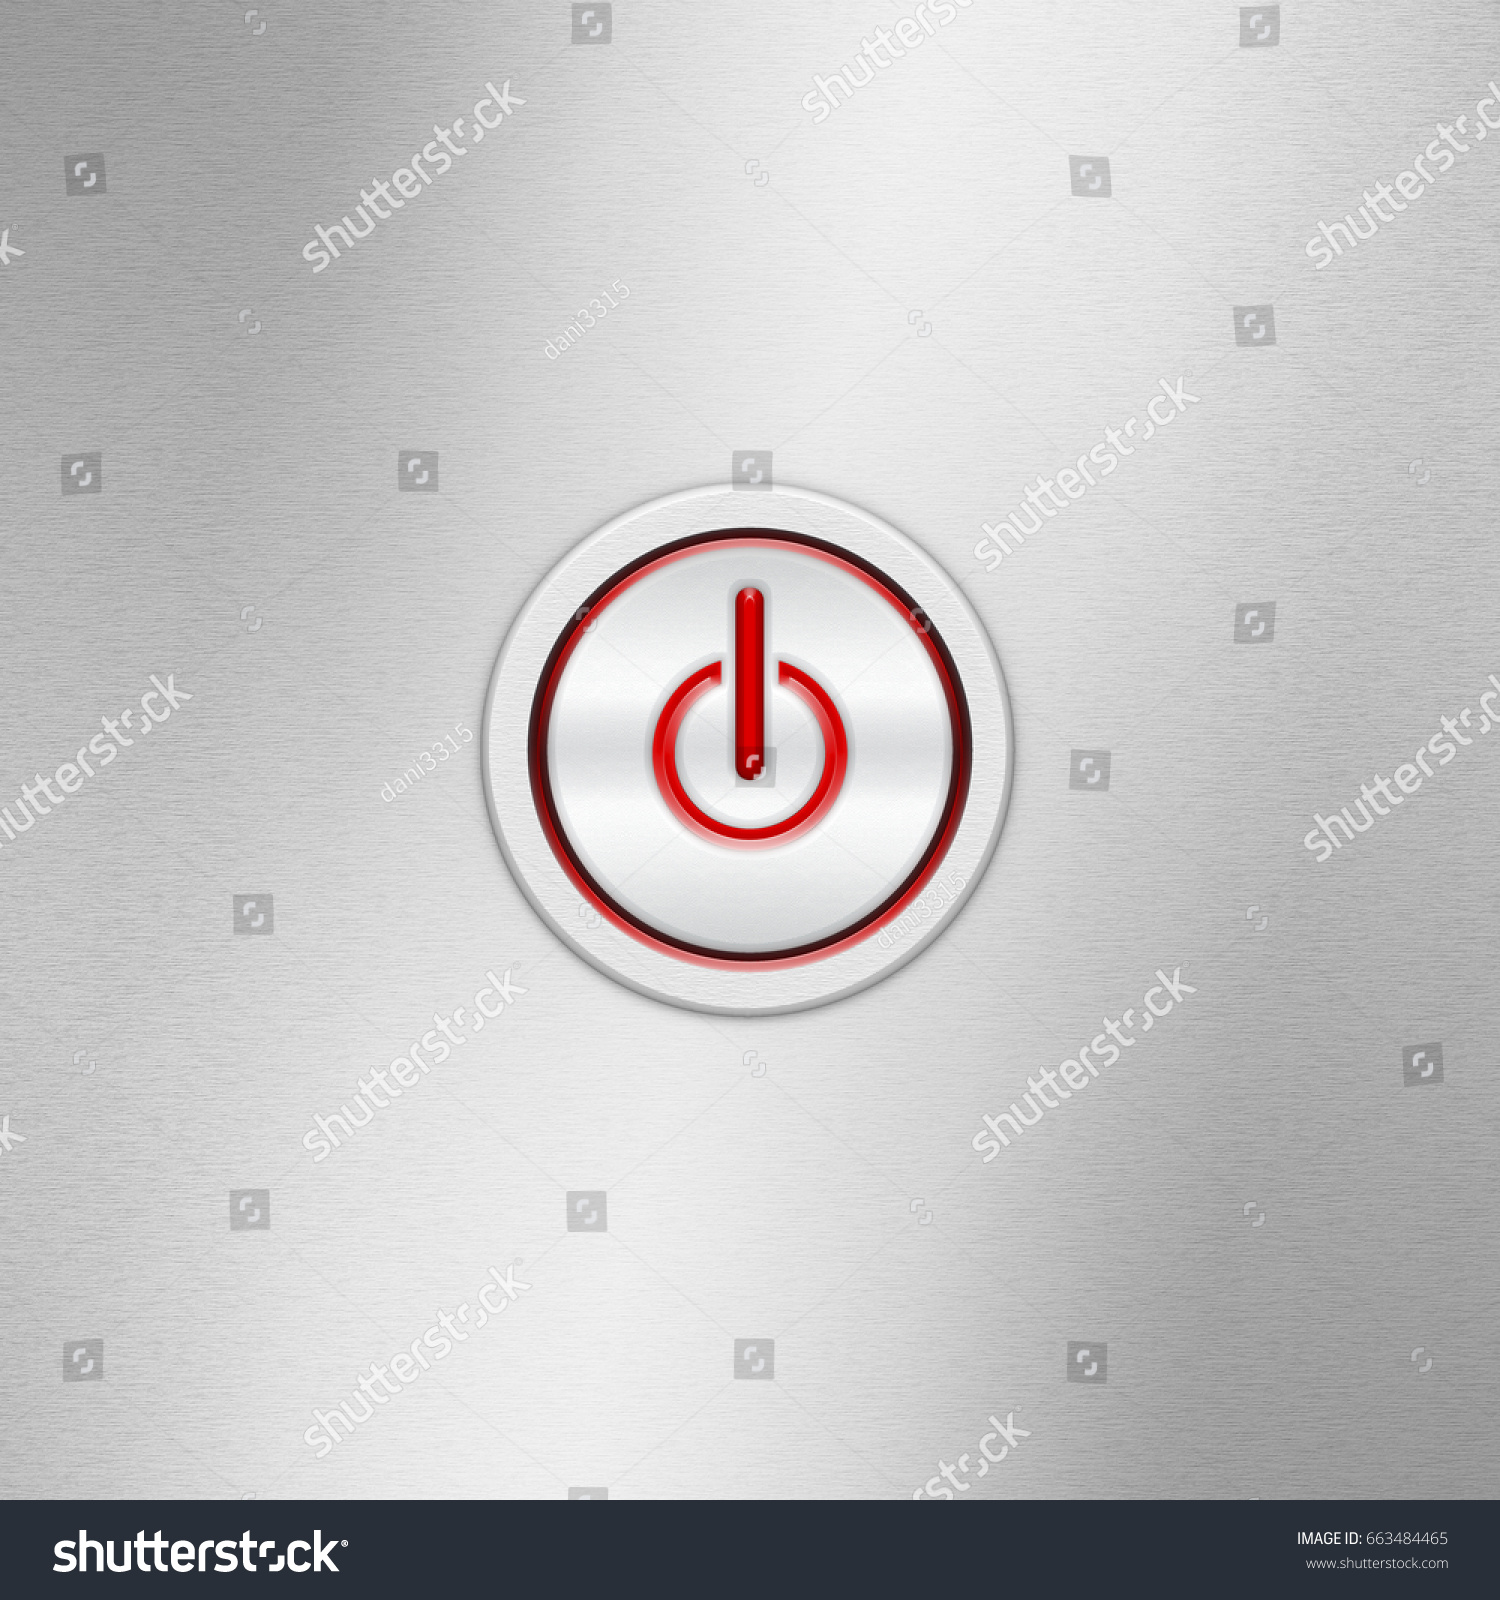 Emergency stop switch symbol dolgularcom electric power steering delighted emergency stop switch symbol contemporary the best stock photo user interface switch button on off buycottarizona Images